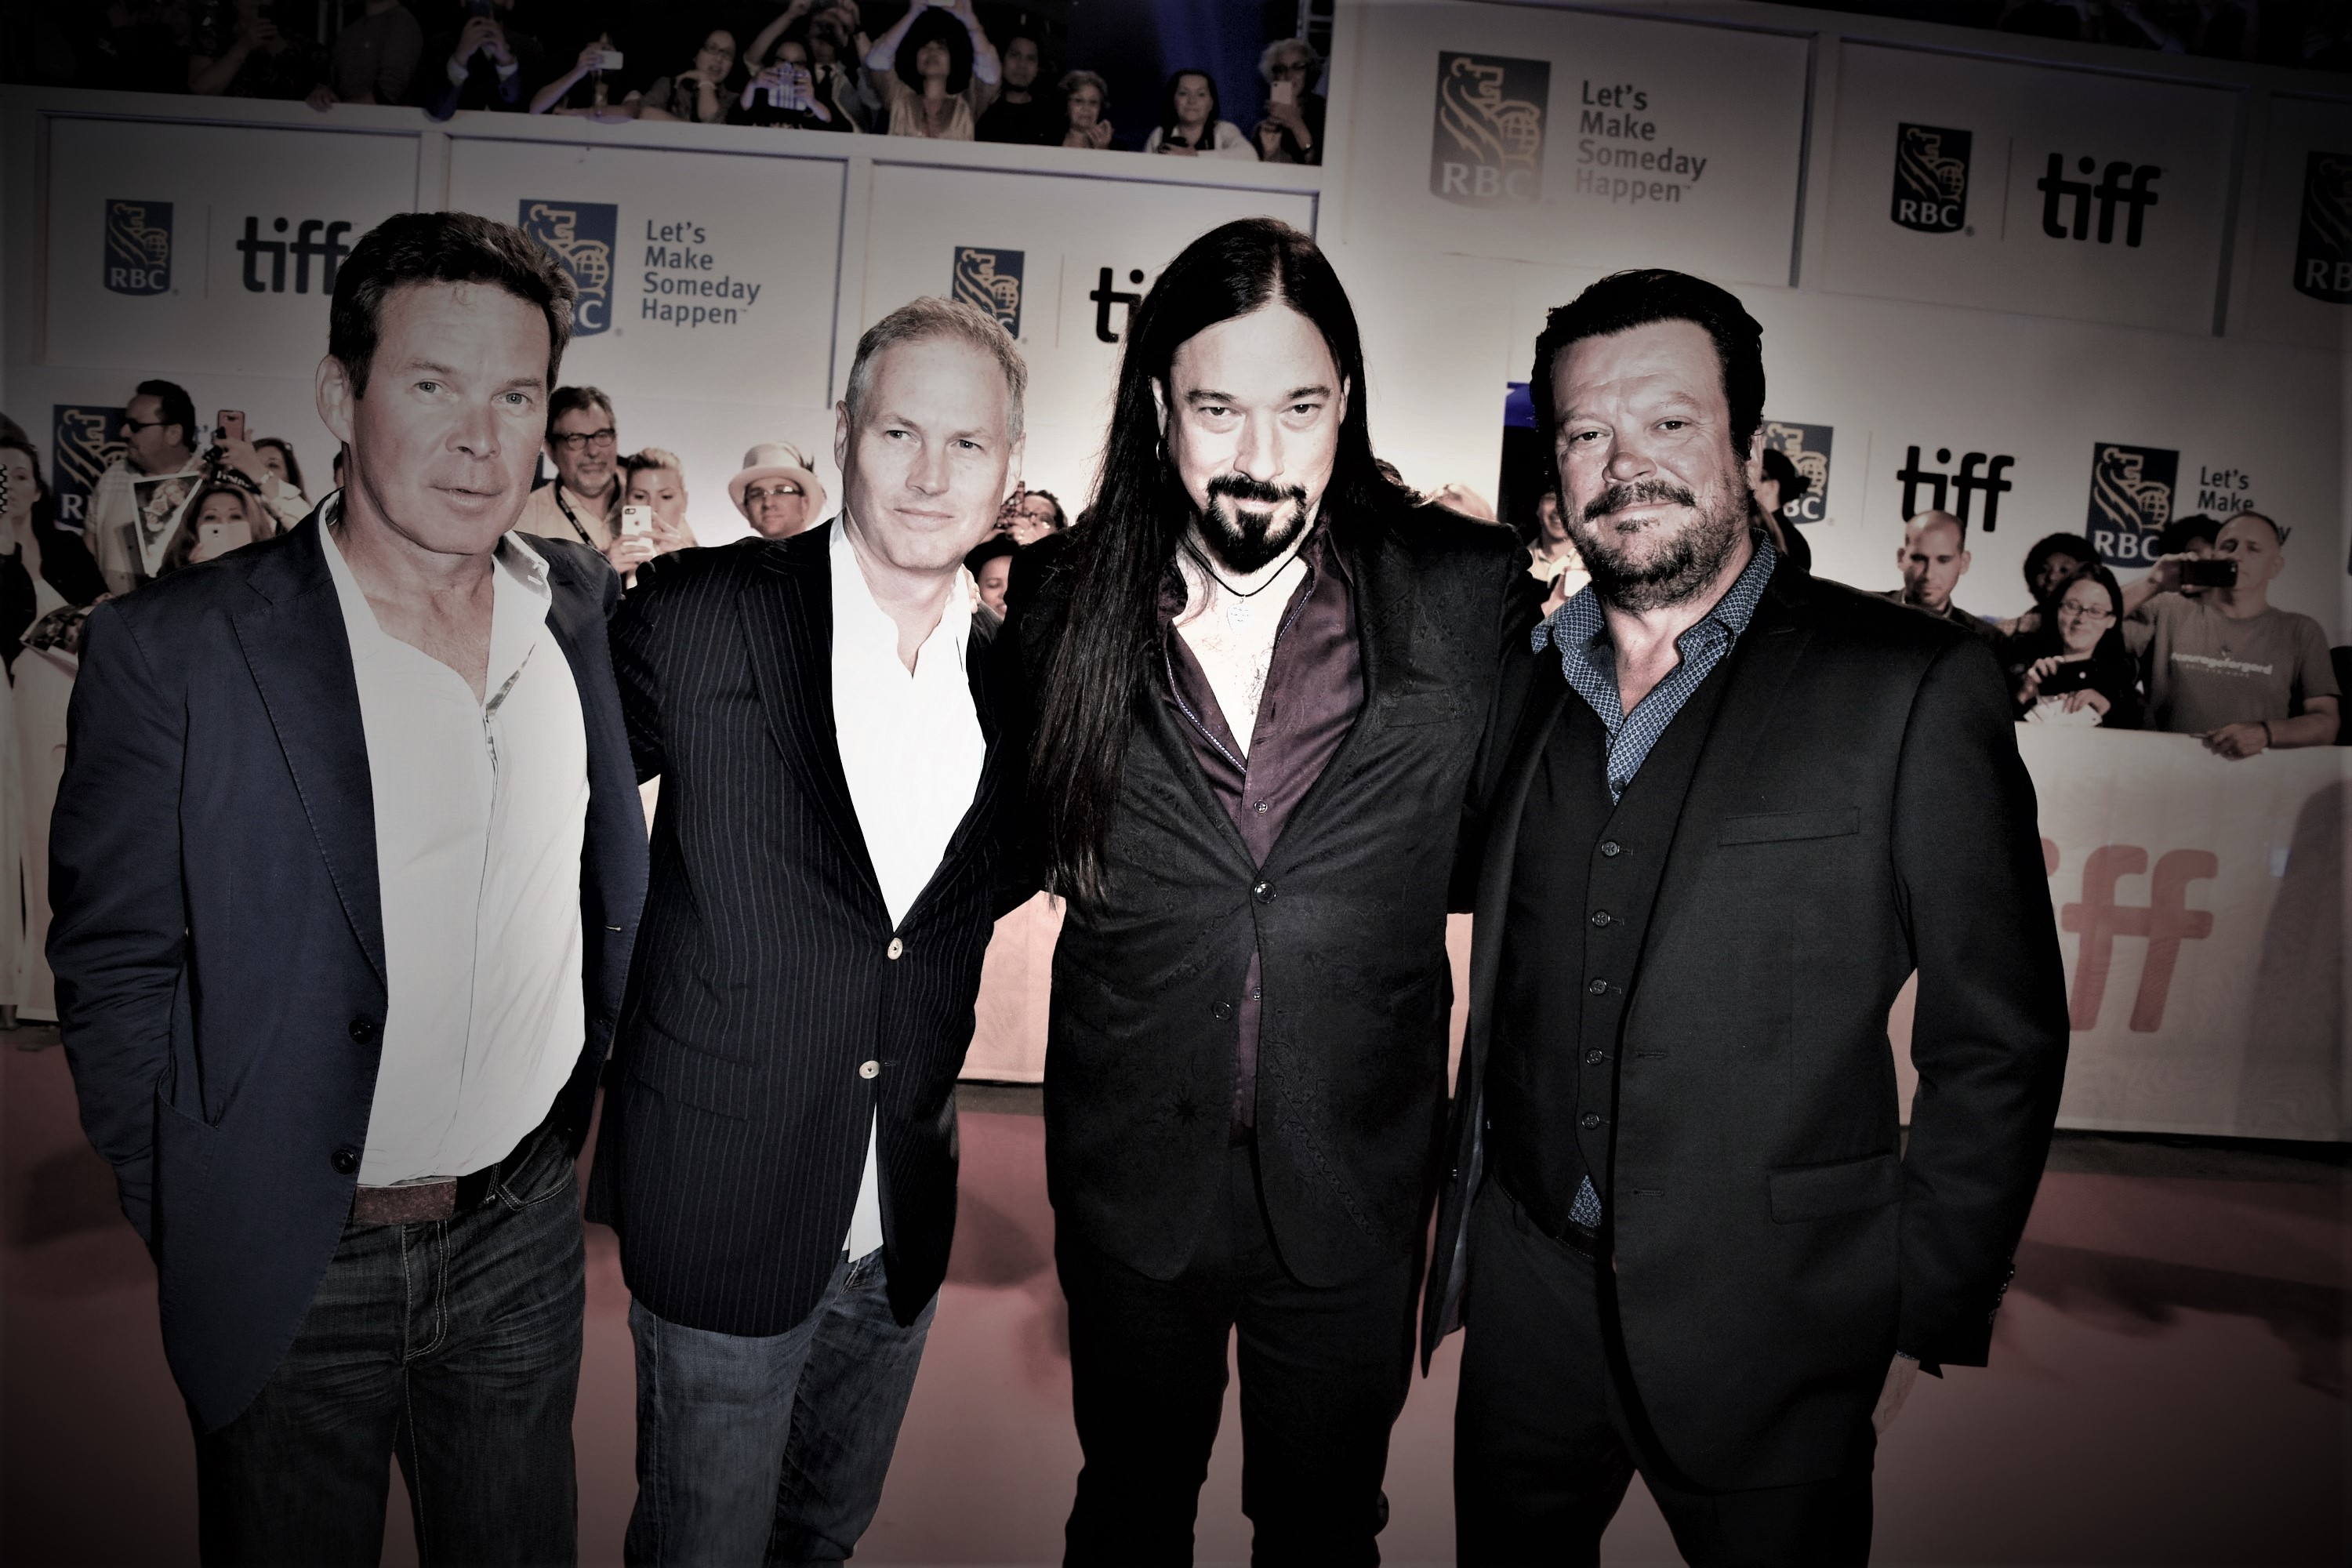 Backstage at TIFF sans Gord Downie::The Tragically Hip from left: Gord Sinclair, Johnny Fay, Rob Baker and Paul Langlois Pic: George Pimental